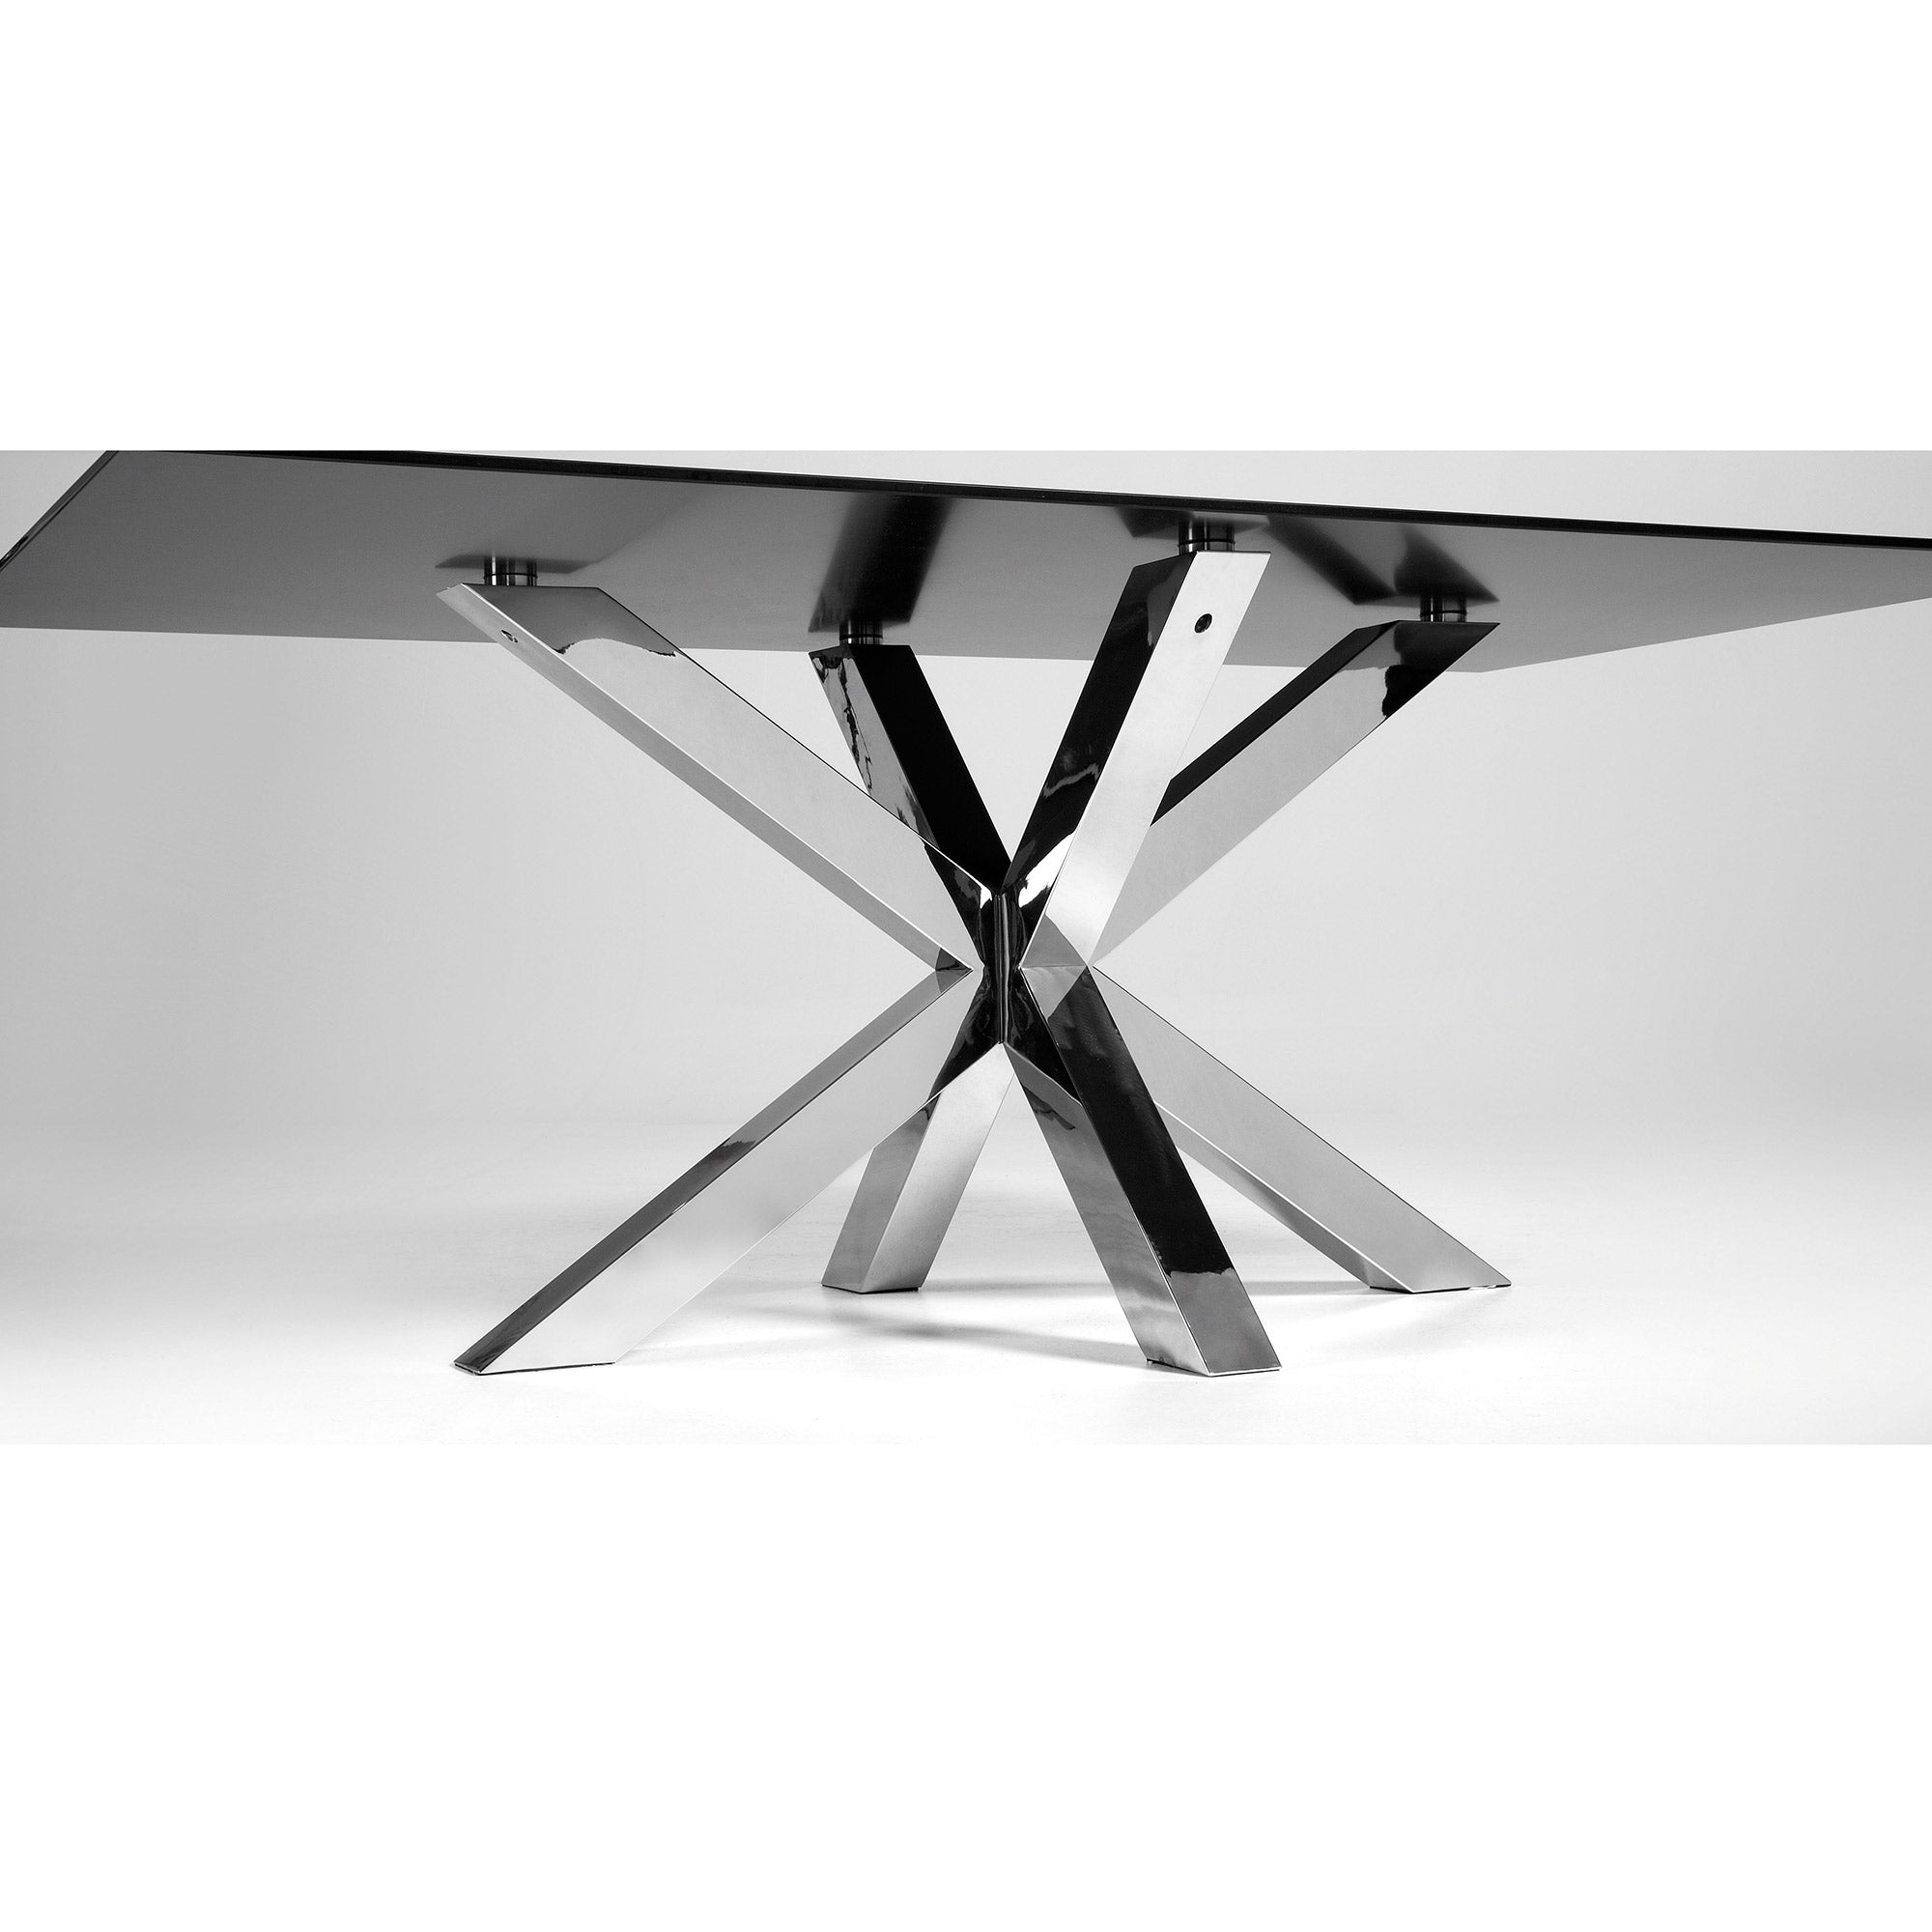 Mermi 200cm Dining Table in Black Glass & Stainless Steel